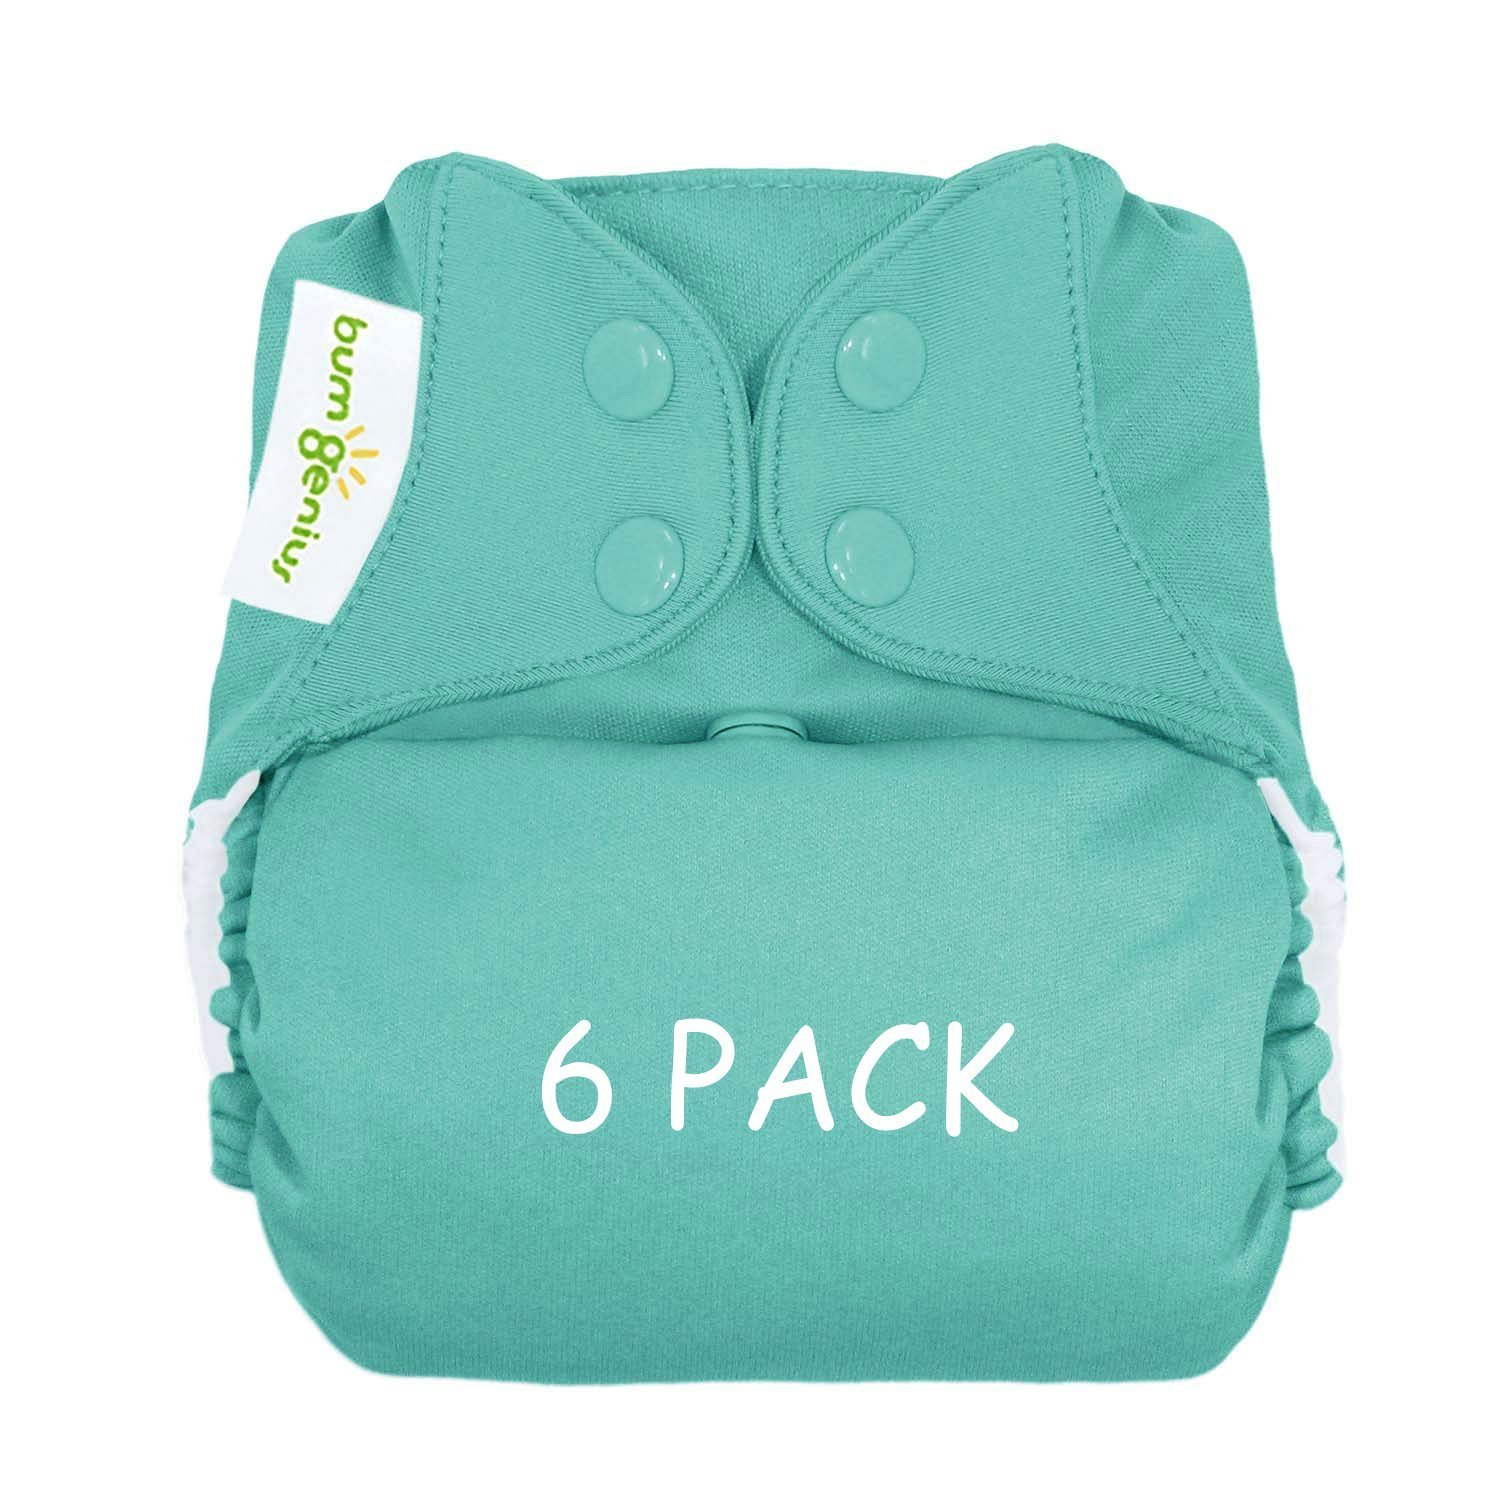 Bumgenius Freetime Cloth Diapers 6 Pack Mixed Colors Snaps by Freetime (Image #1)